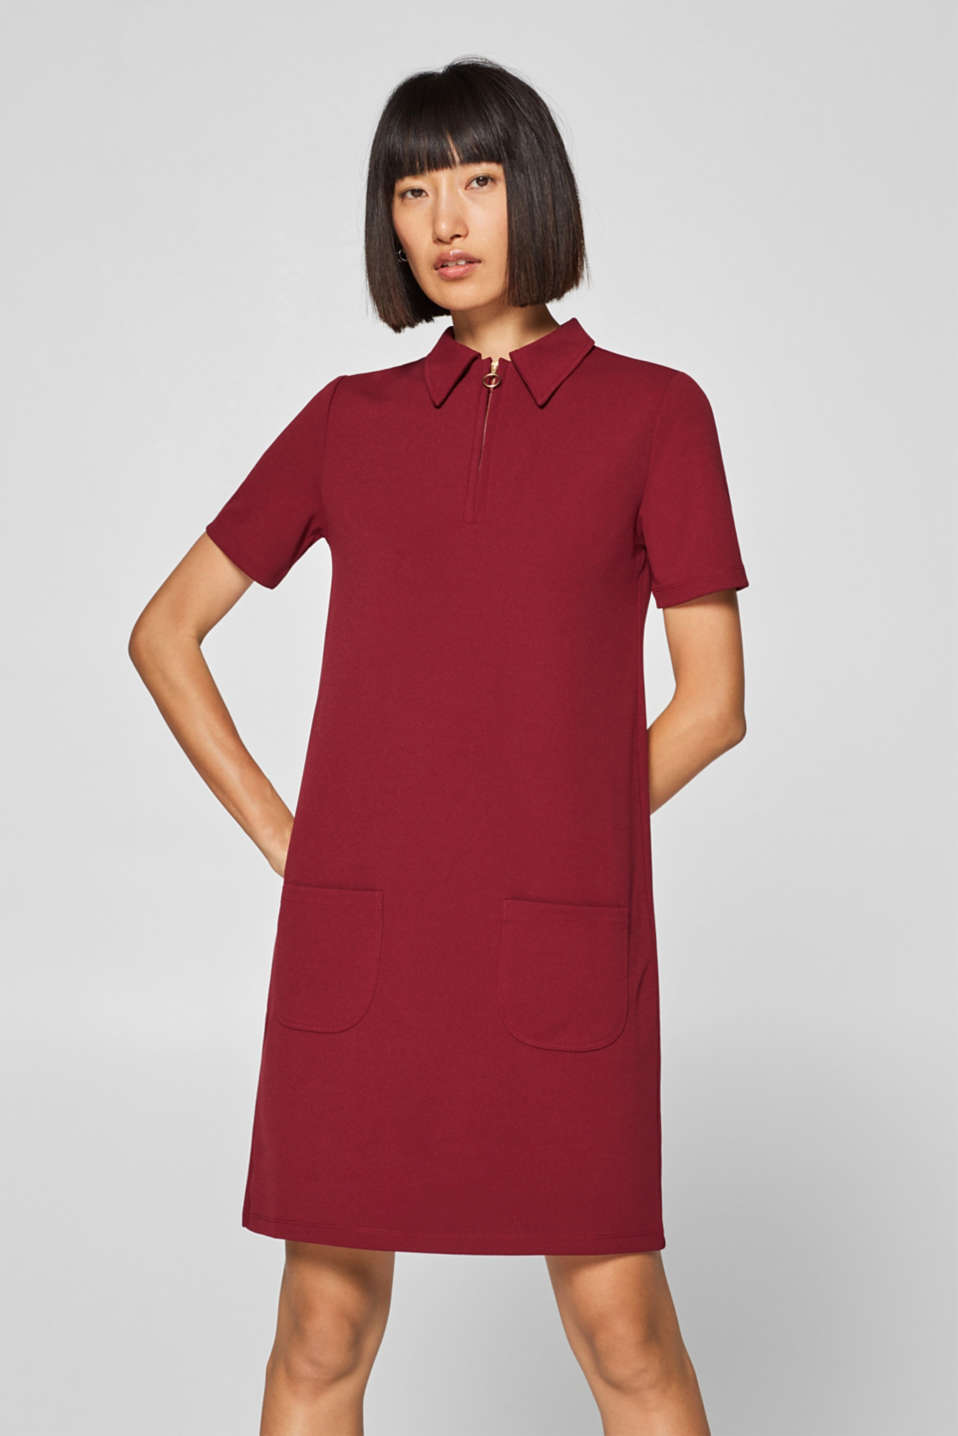 Esprit - Zip-up polo dress made of stretch jersey